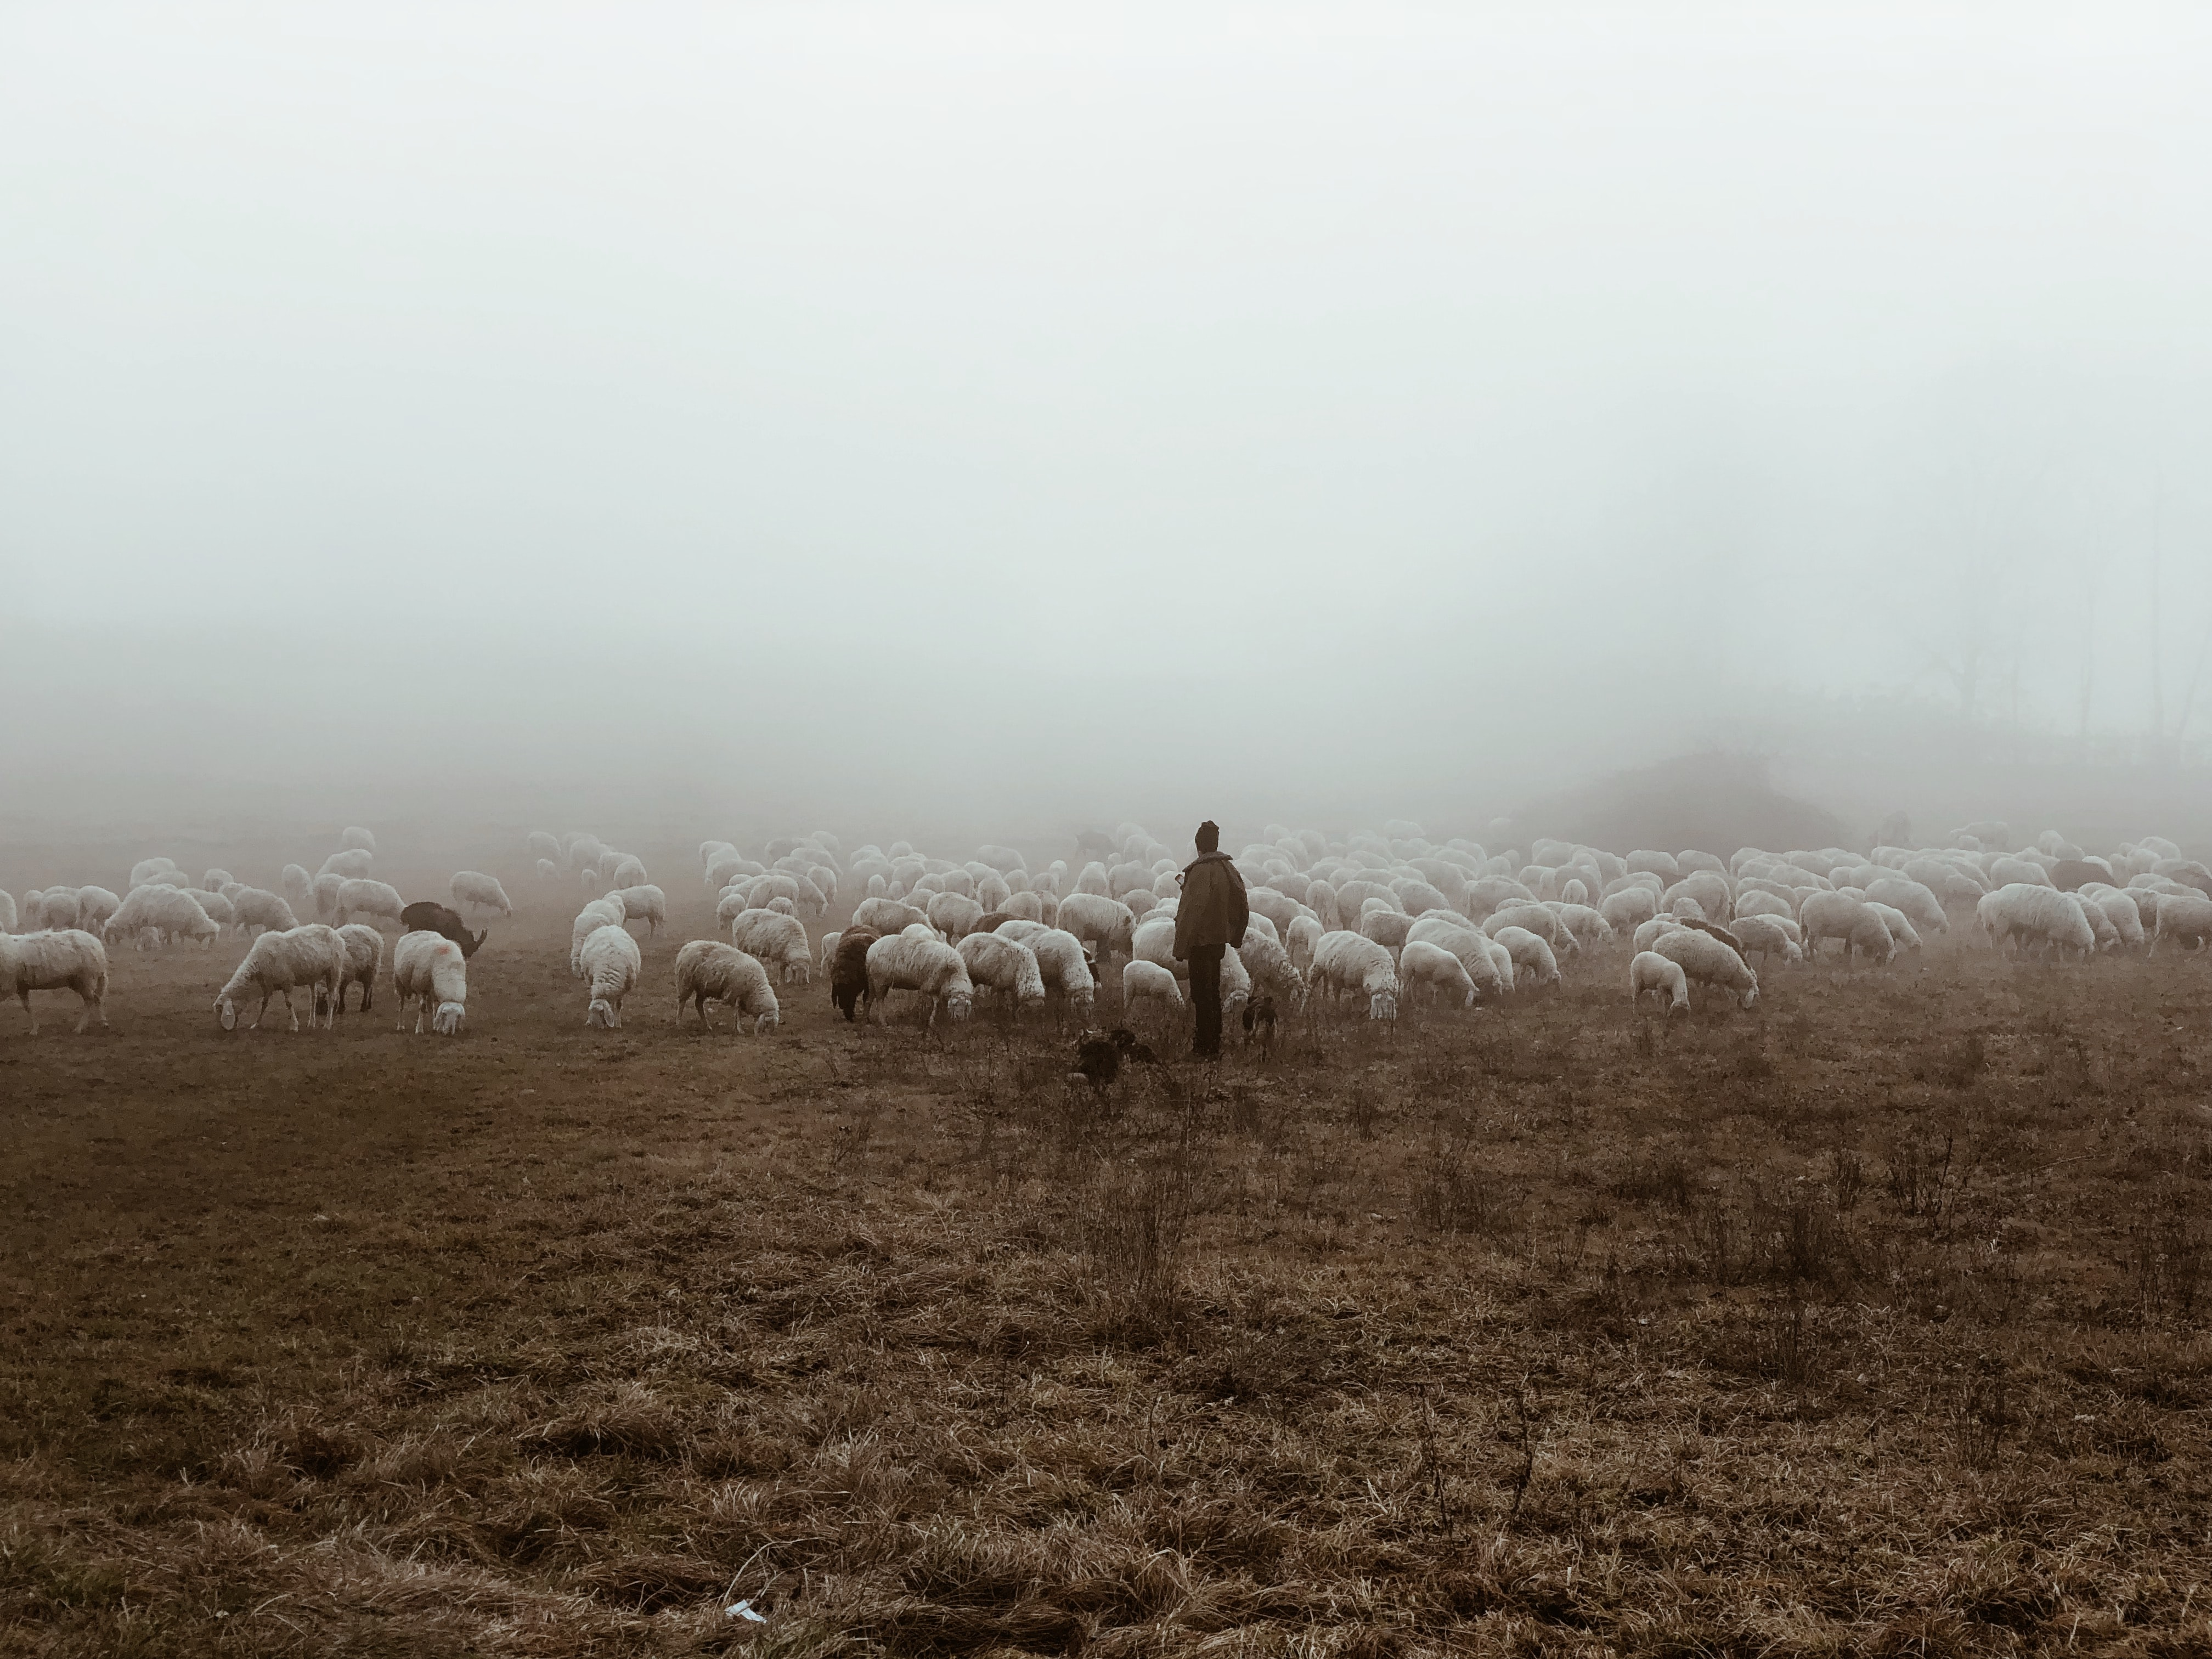 person standing near herd of lambs